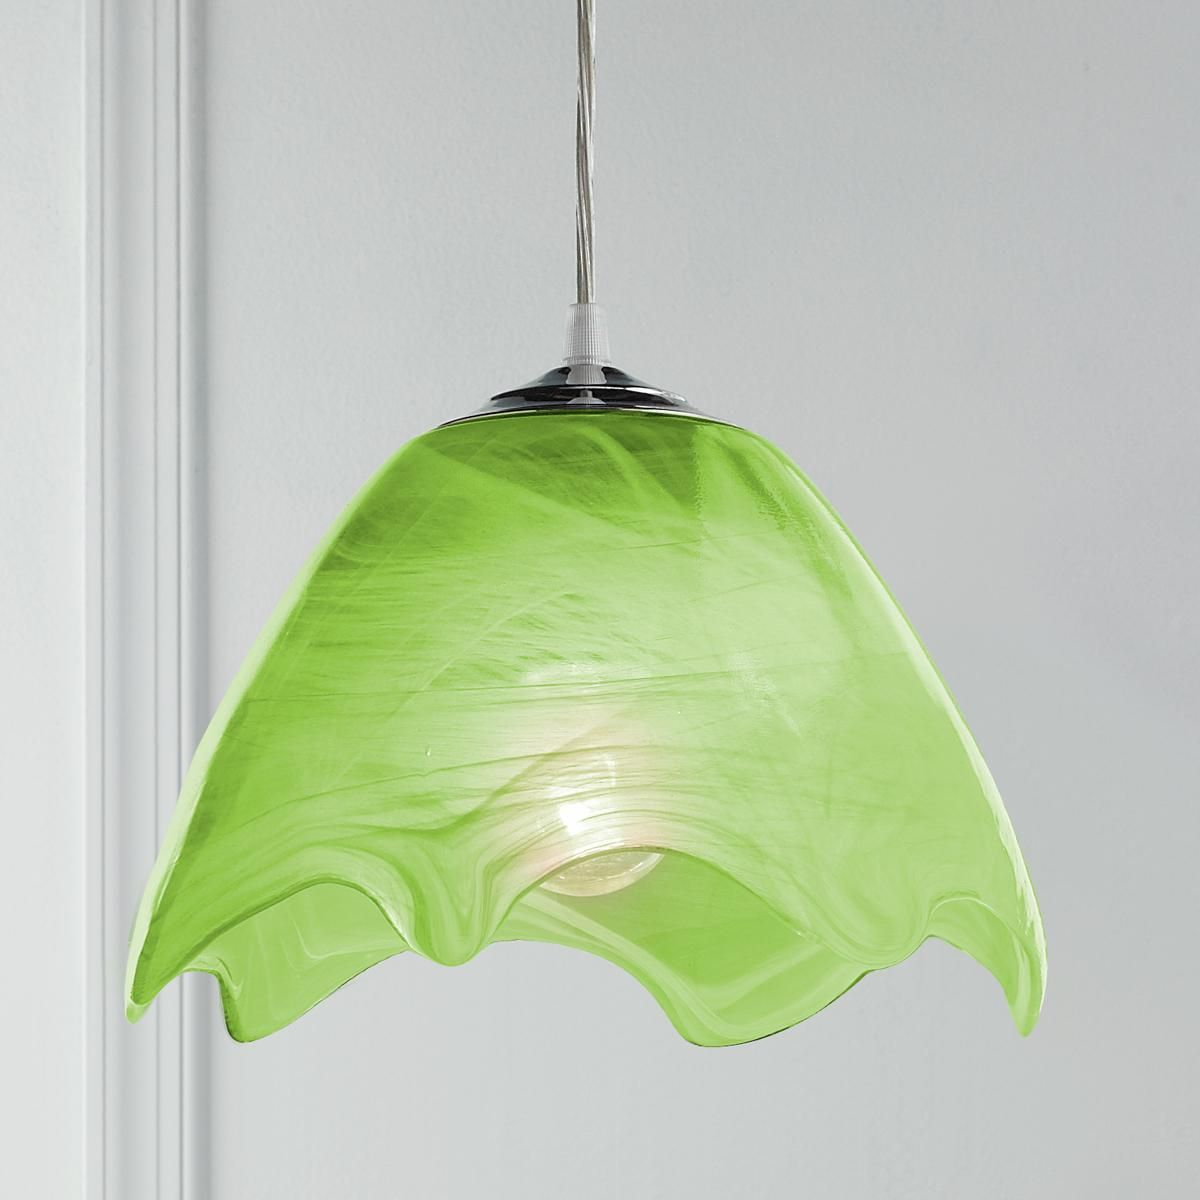 wavy glass pendant light - Glass Pendant Lighting